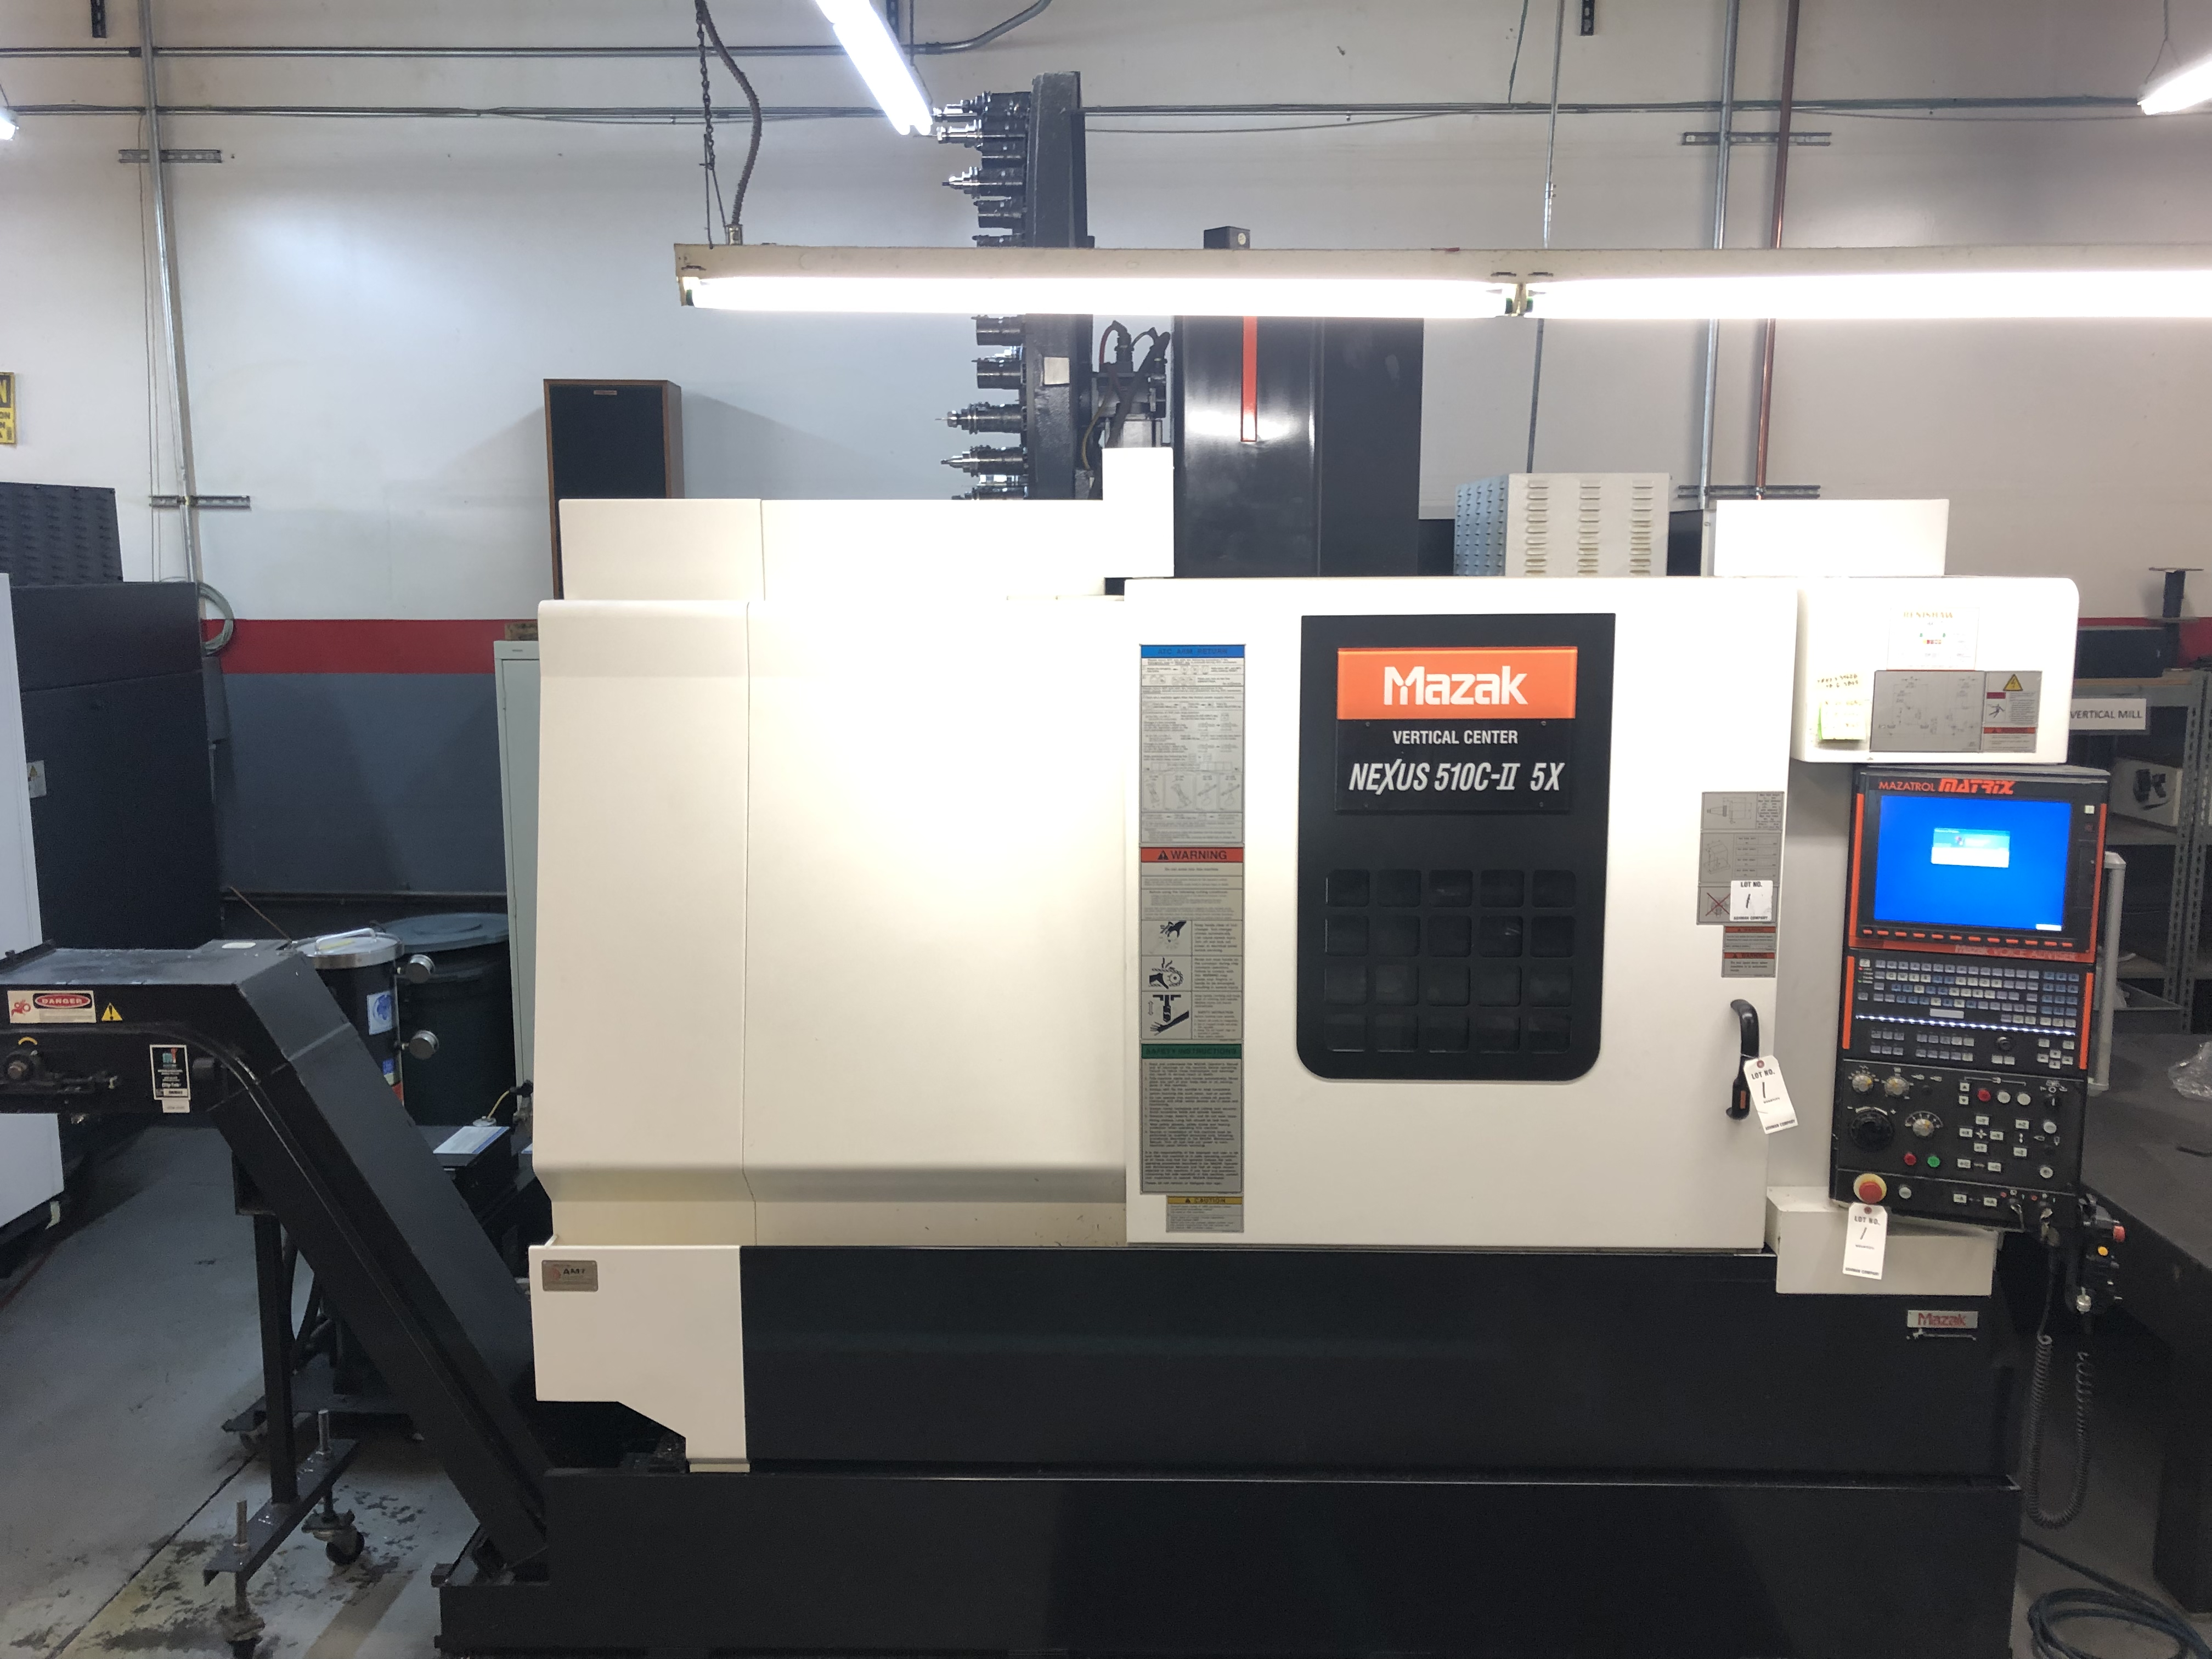 Lot 1 - 2011 Mazak VCN 510C-II 5X Vertical Machining Center- 25 HP Spindle Motor, 12,000 RPM Spindle